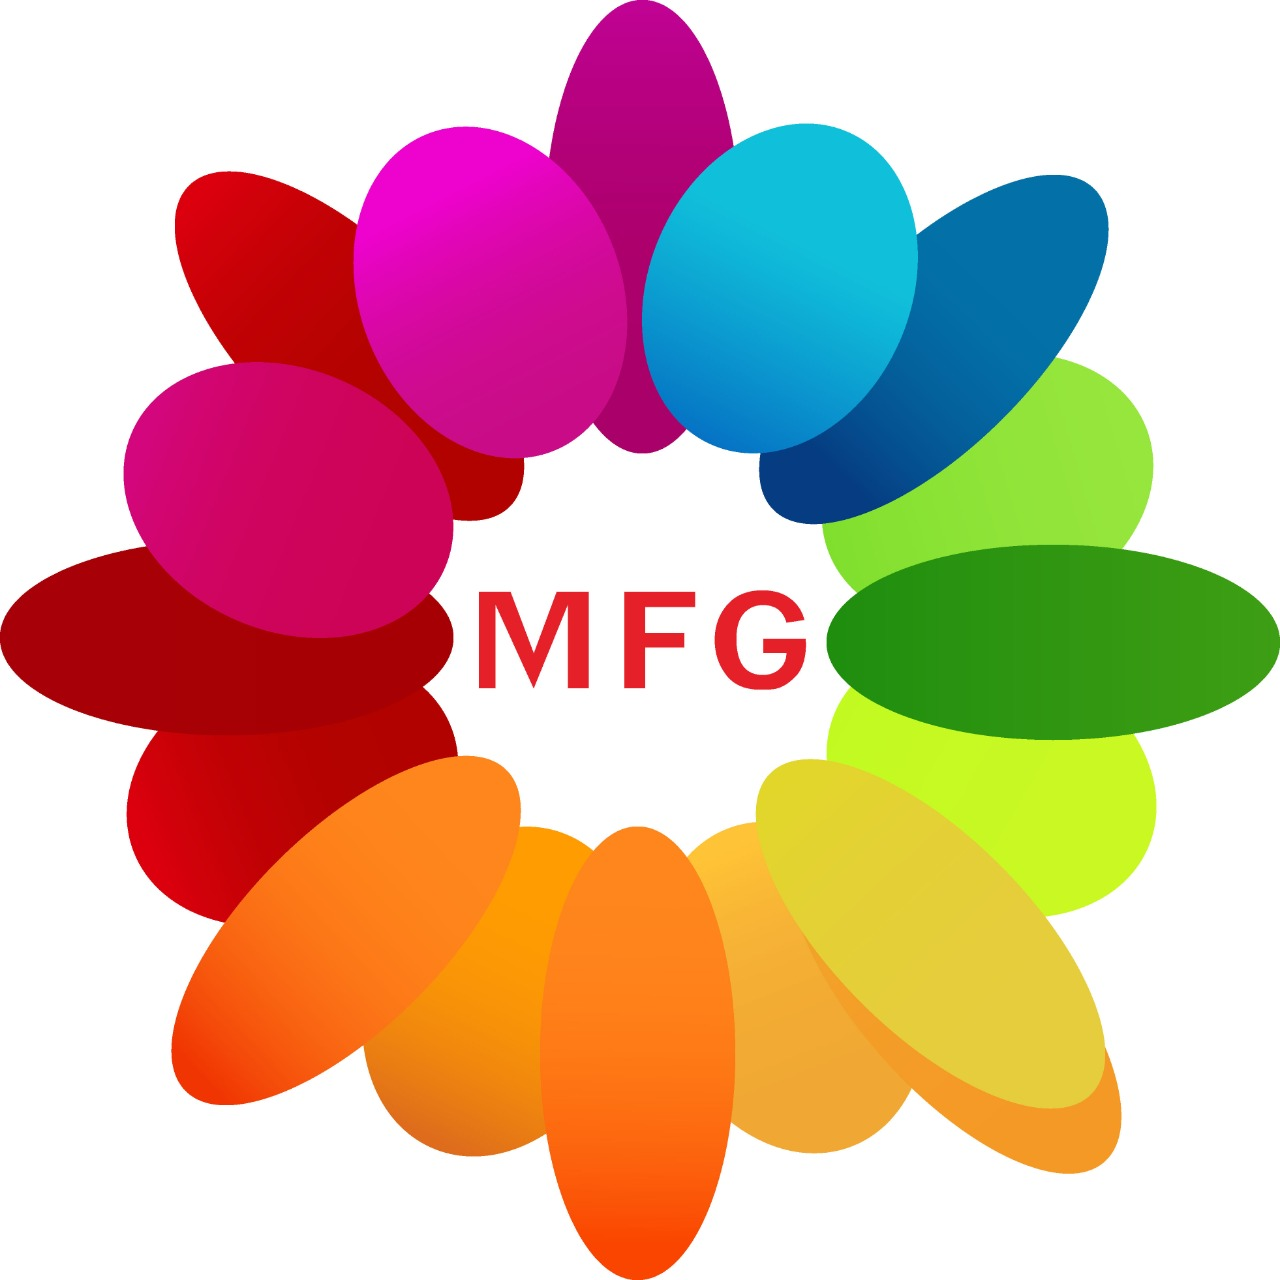 6 yellow and white lilies arranged in glass vase